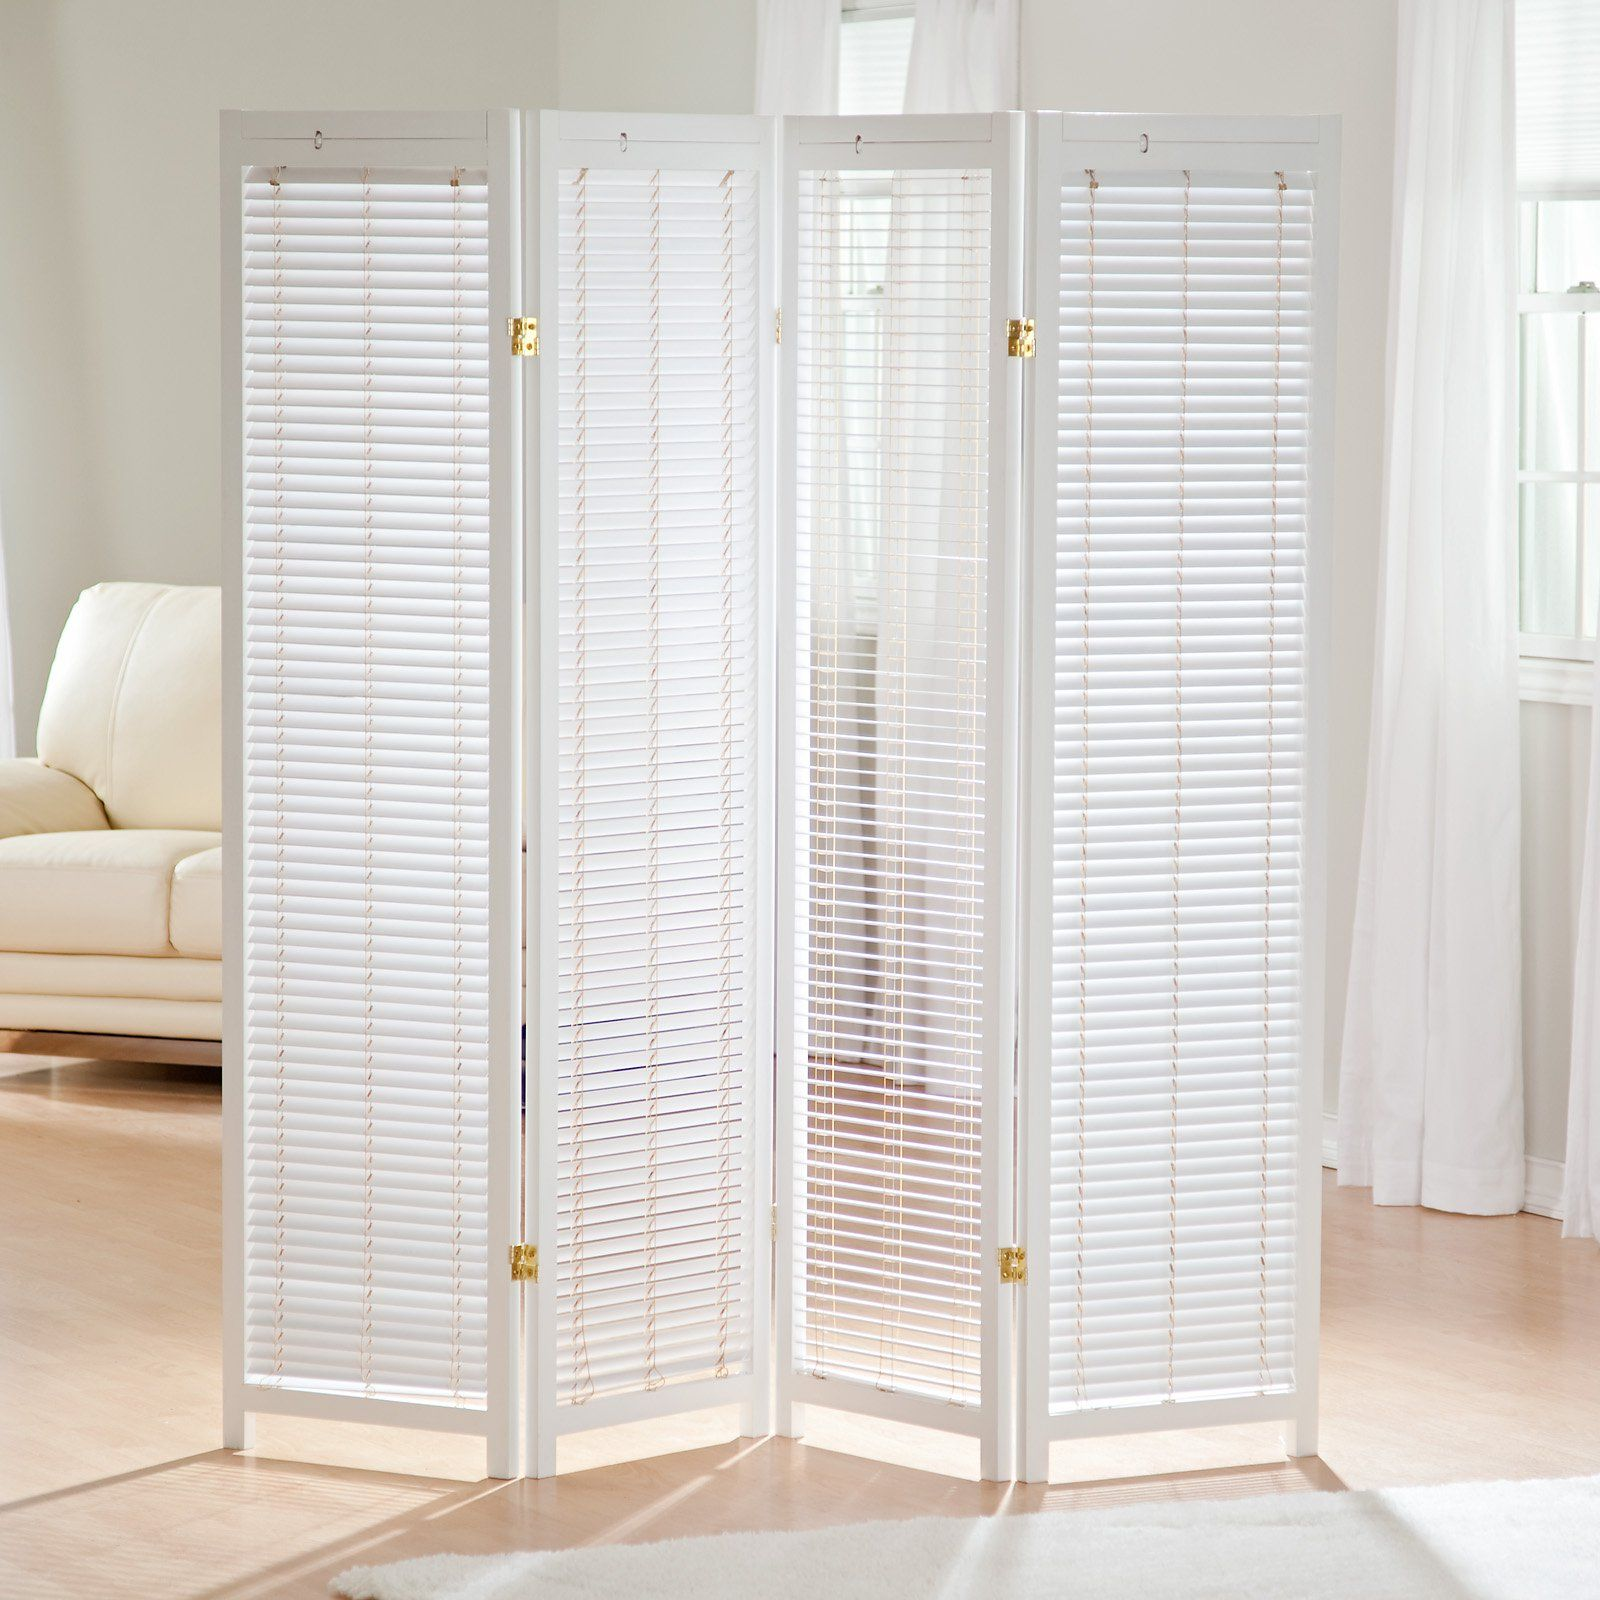 Marvelous Tranquility Wooden Shutter Screen Room Divider In White   The Tranquility  Wooden Shutter Room Divider Is